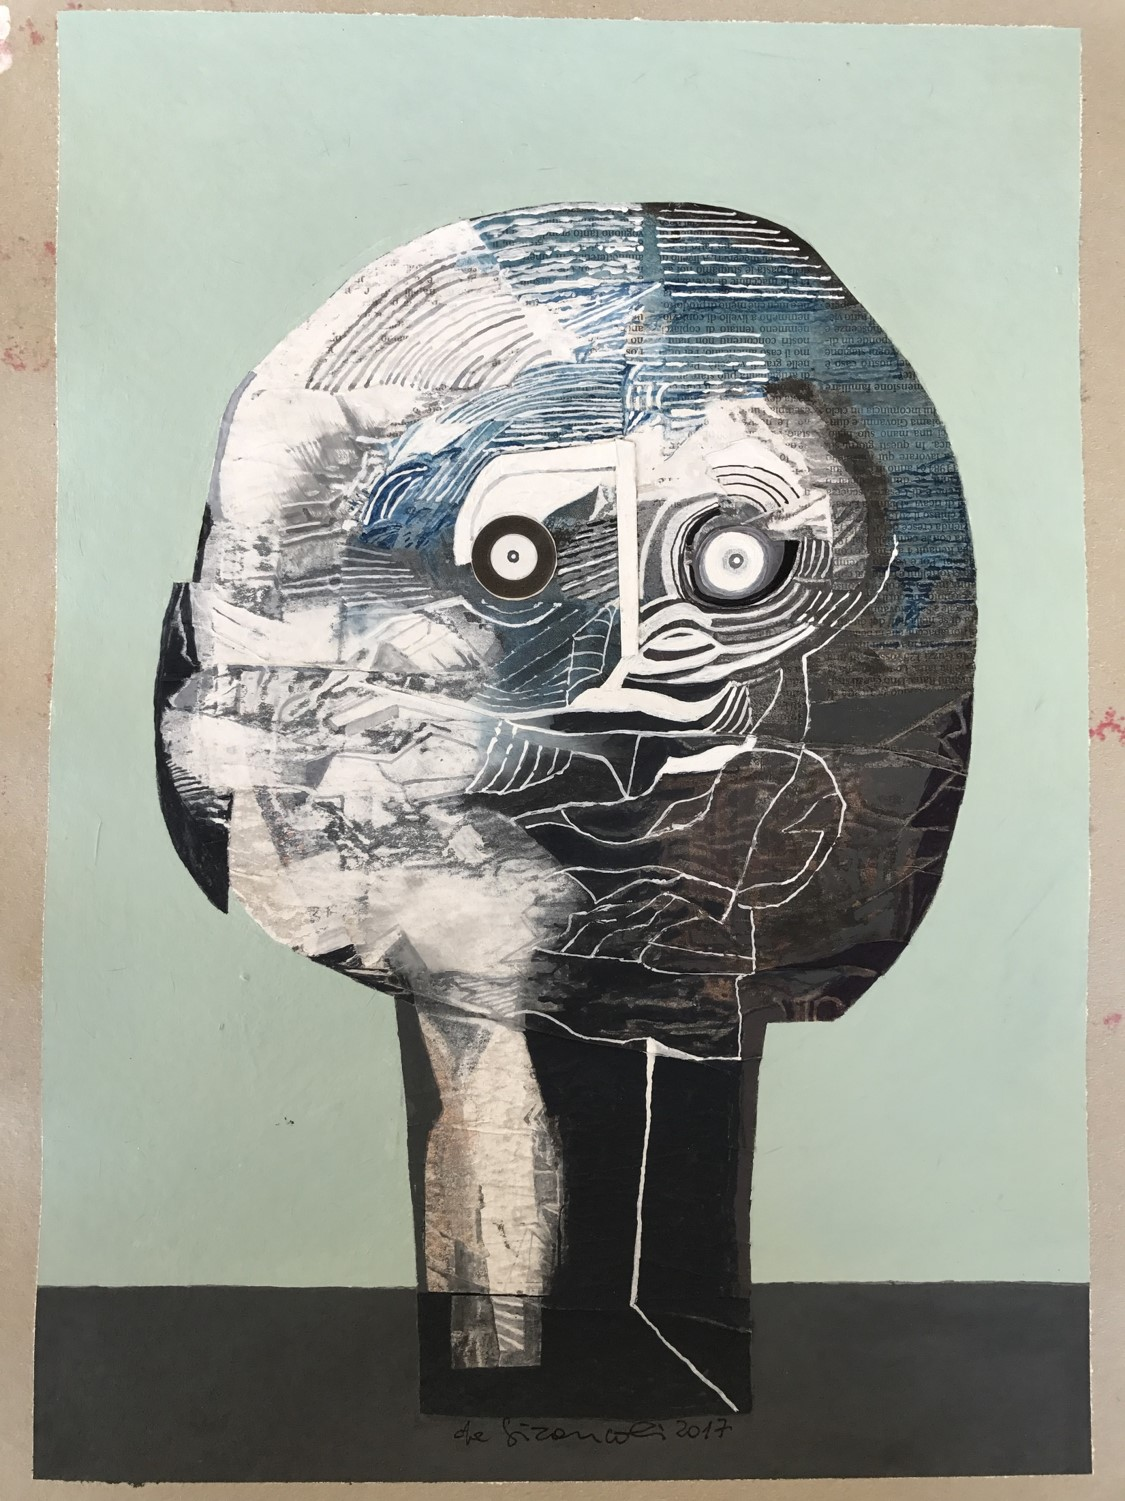 Above: Untitled. Acrylics, inks, pastels and collage on recycled cardboard. Luciano De Gironcoli